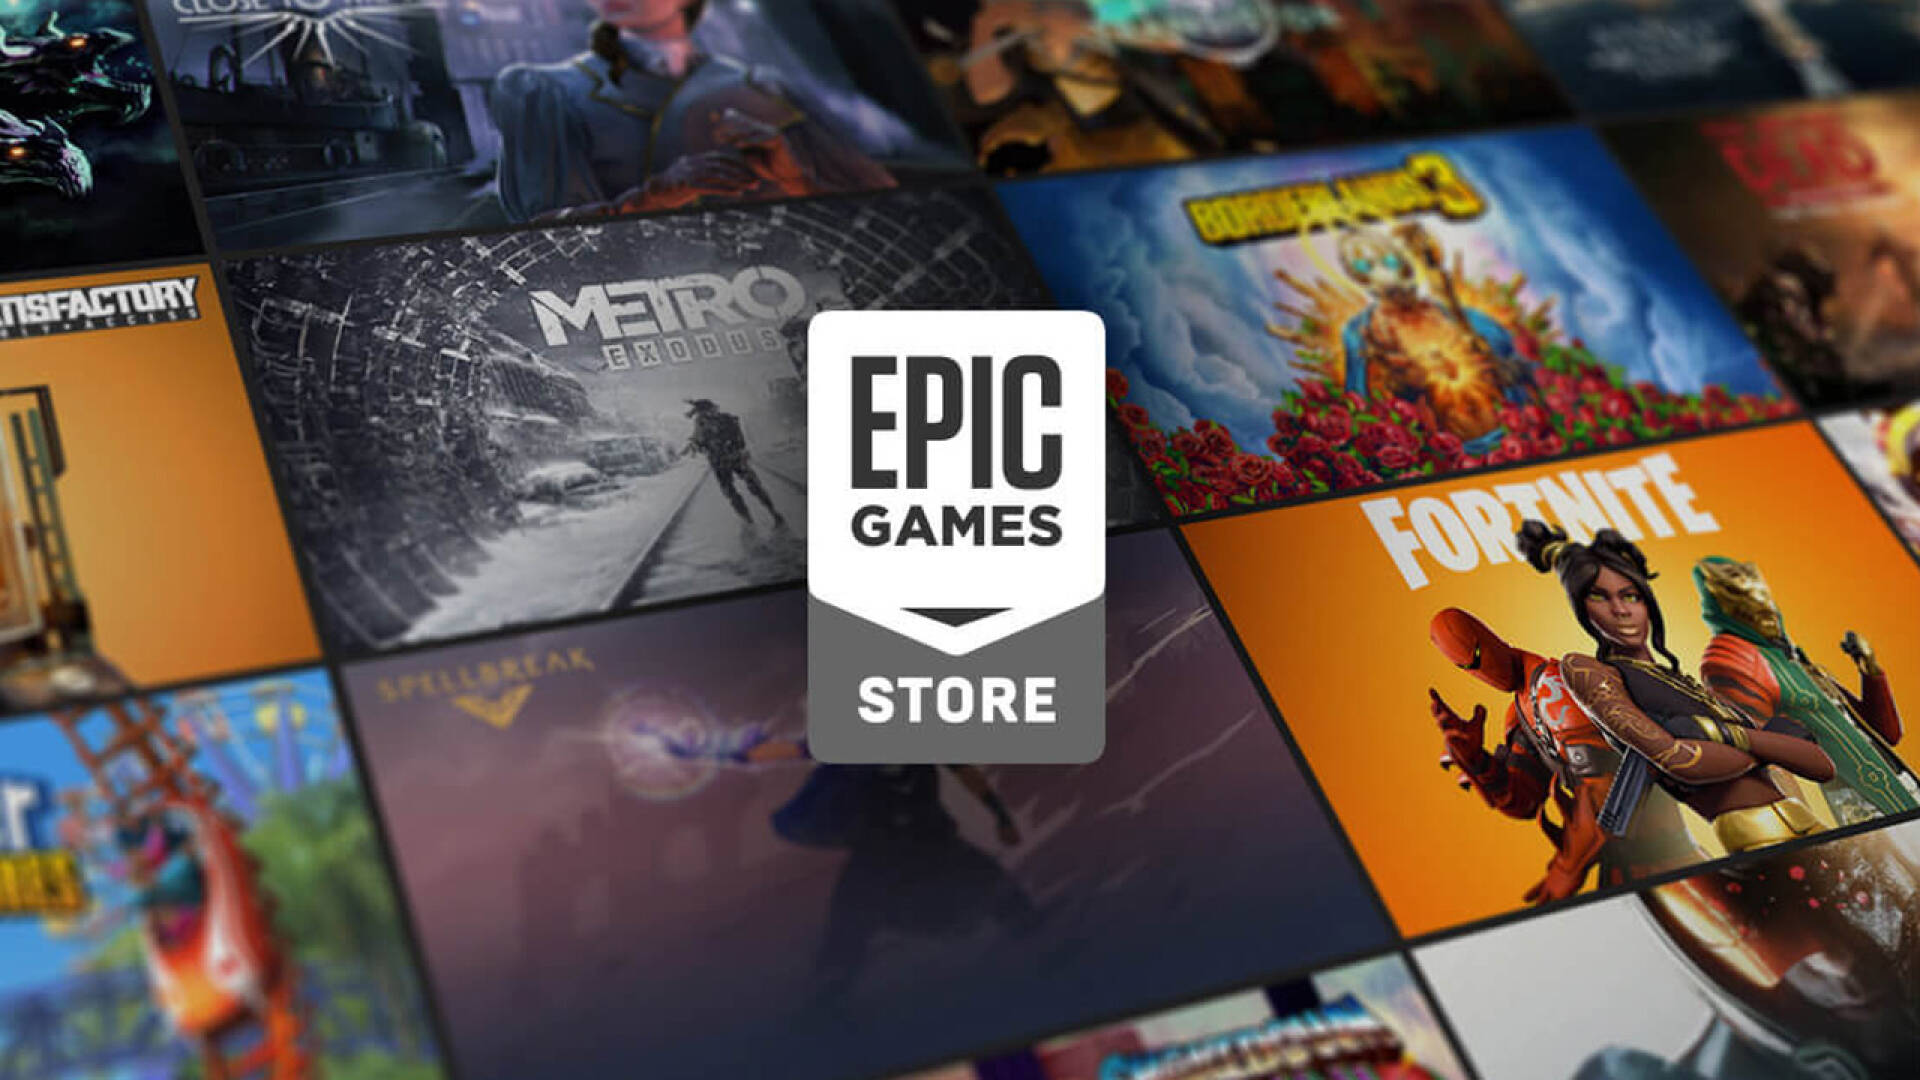 Epic Games Store, unveiled the new free game